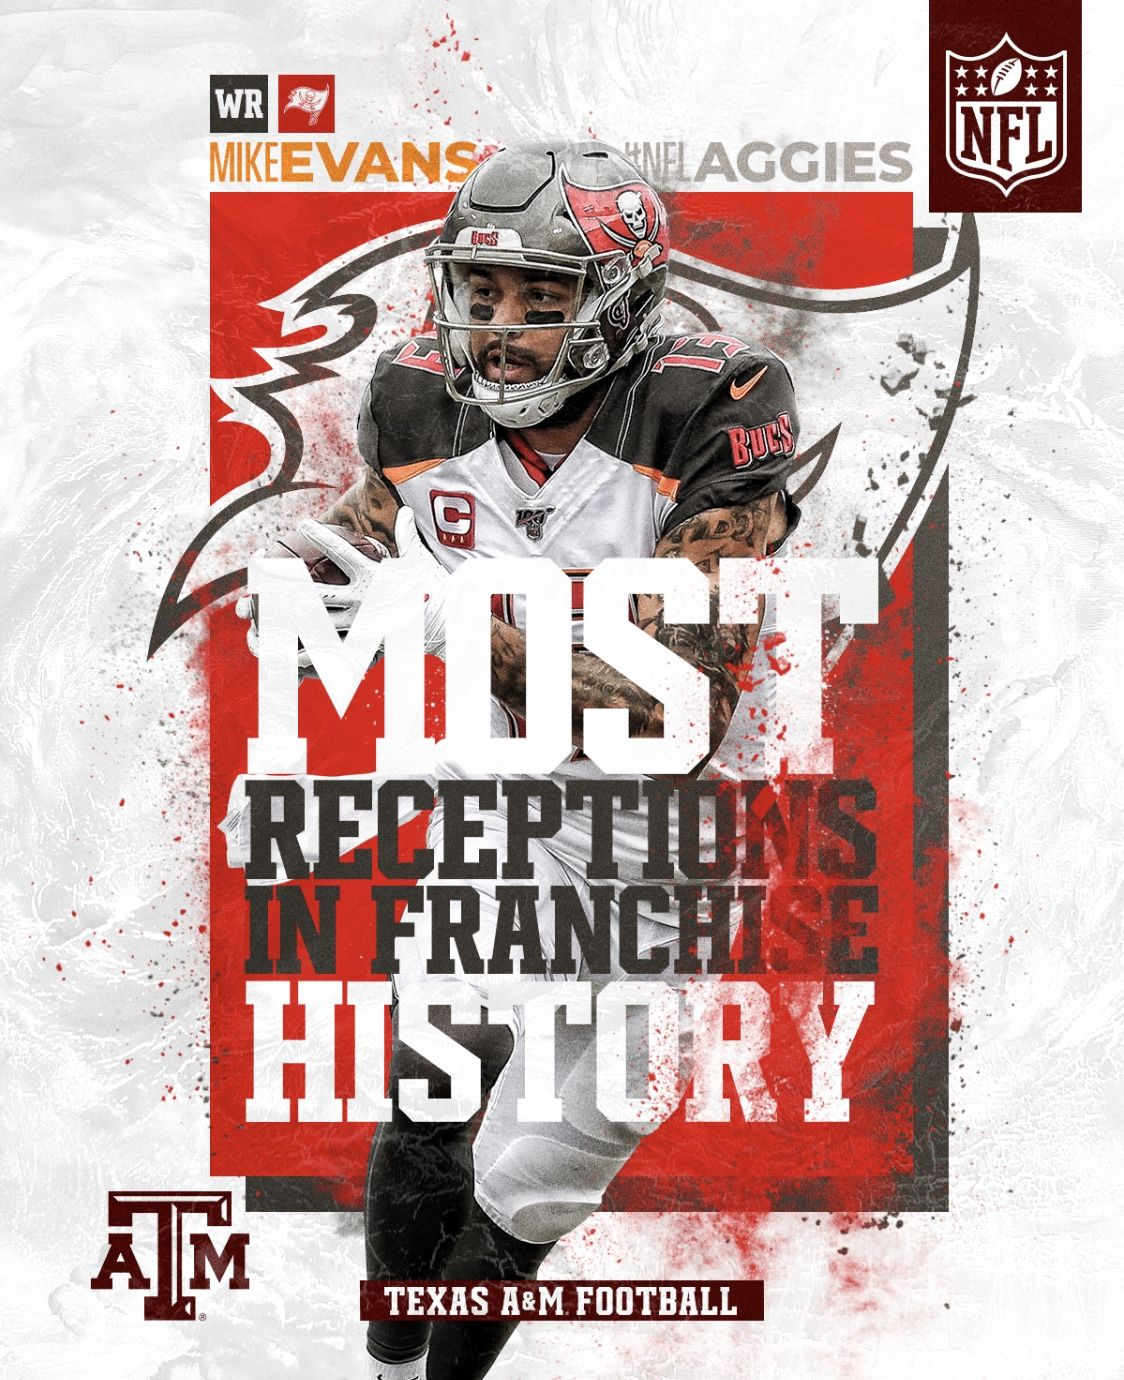 Pin By Randy Willis On Football Graphics In 2020 A M Football Texas A M Football Football